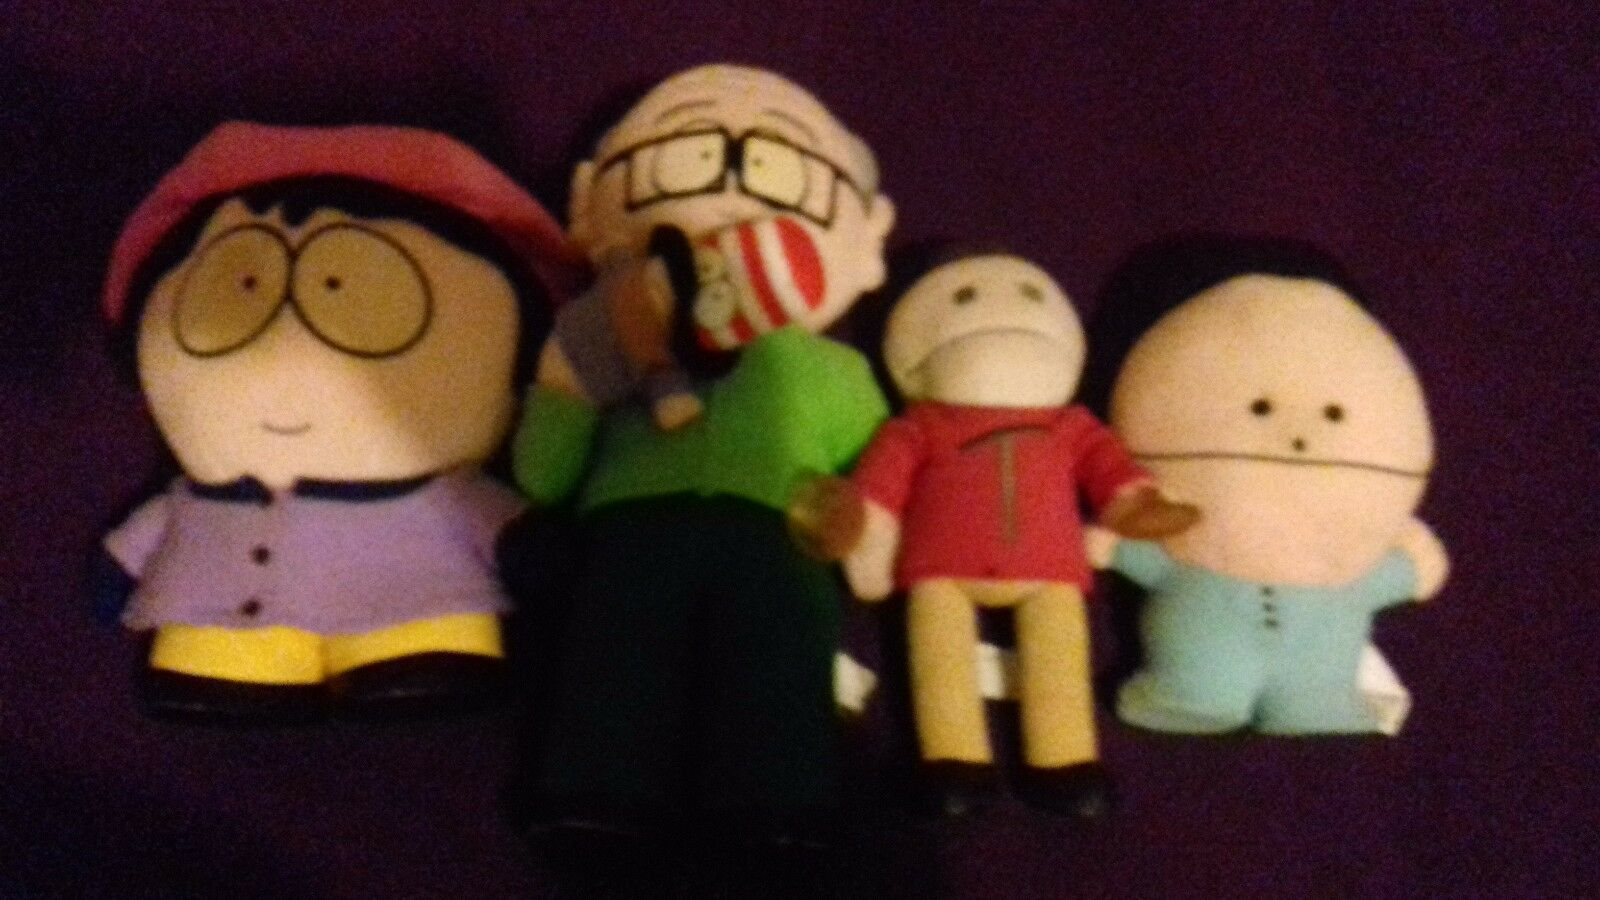 South South South park rare joblot mr garrison 13.5  wendy 10  terence 10.5  ike 8.5  VGC d70251